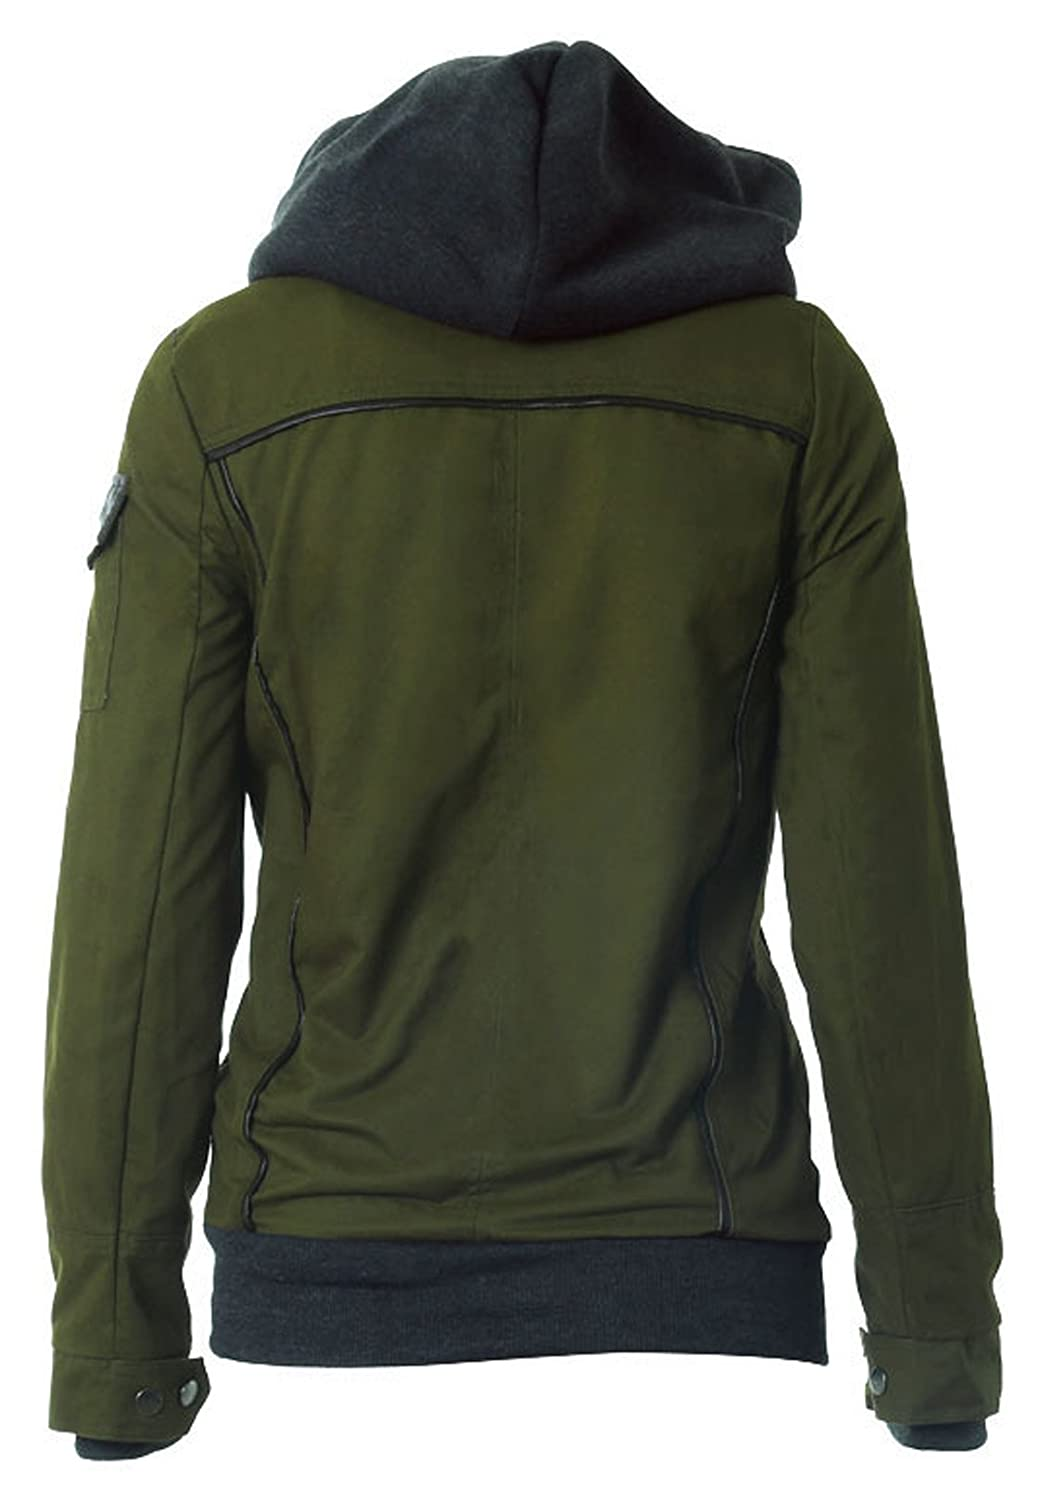 Youhan Women's Fitted Hoodie Thick Hooded Sweatshirt at